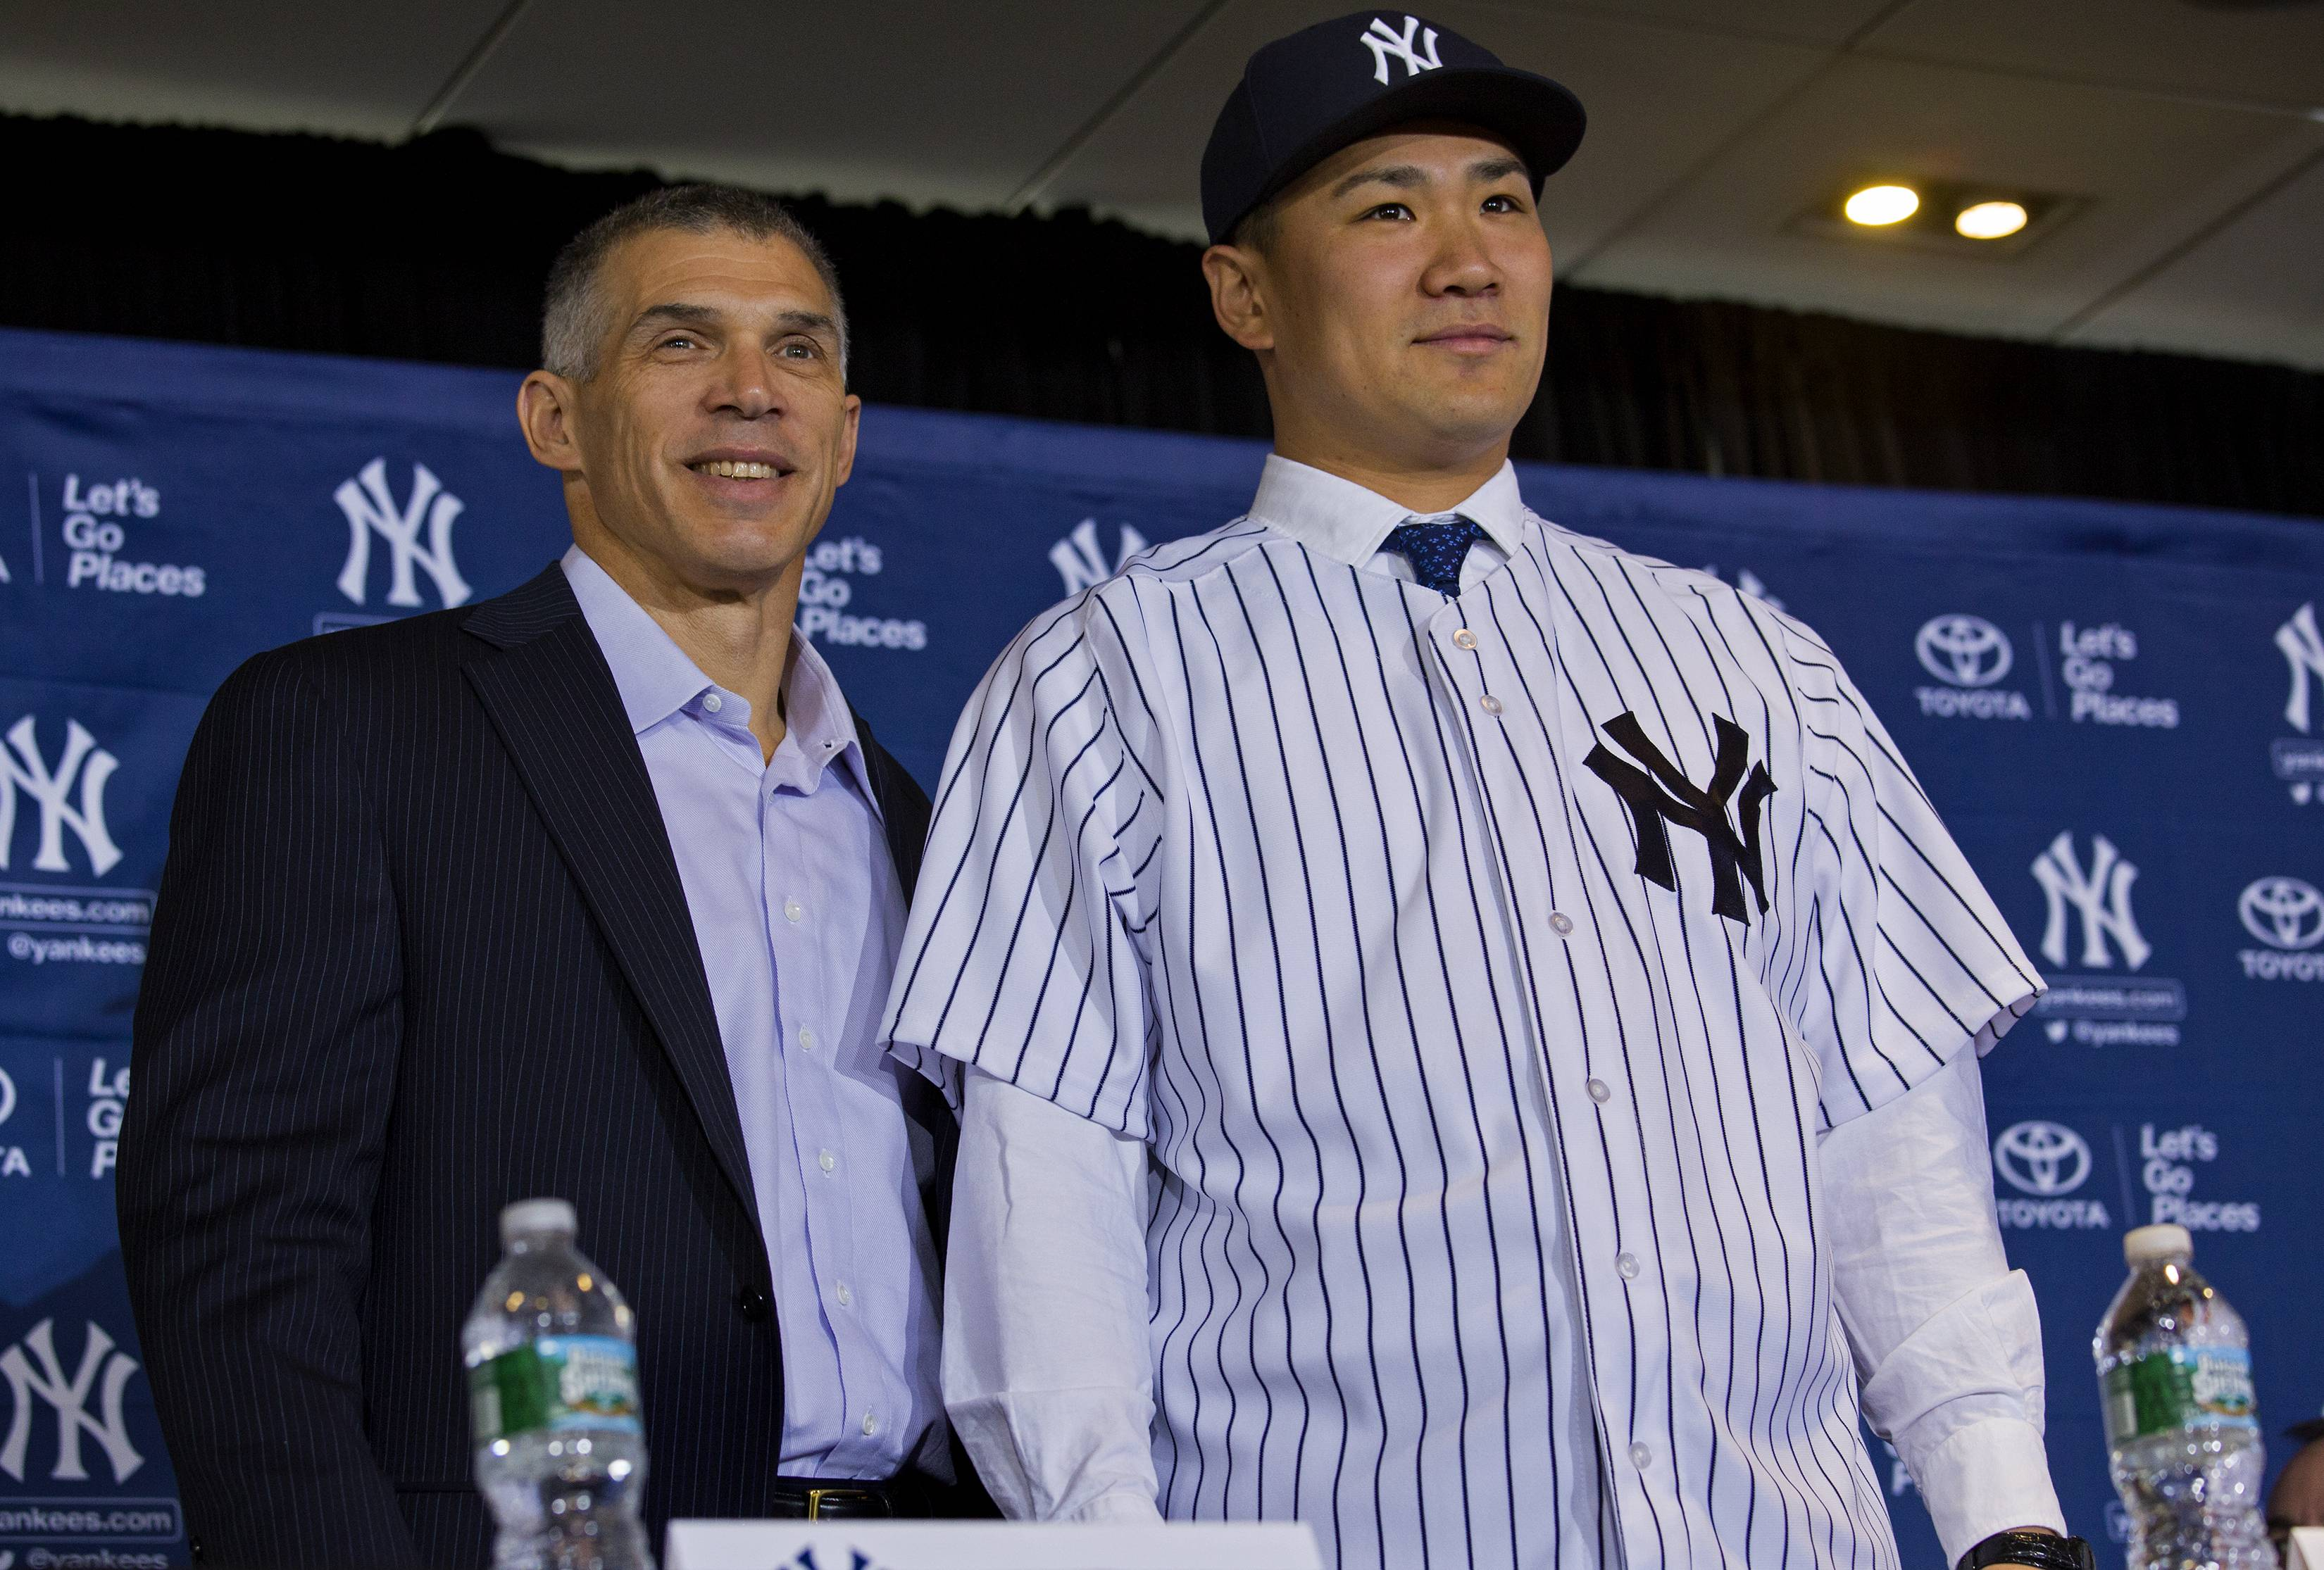 New York Yankees' pitcher Masahiro Tanaka, right, poses with New York Yankees manager Joe Girardi as he was introduced to the media at Yankee Stadium in New York Tuesday, Feb. 11, 2014. AP Photo/Craig Ruttle)